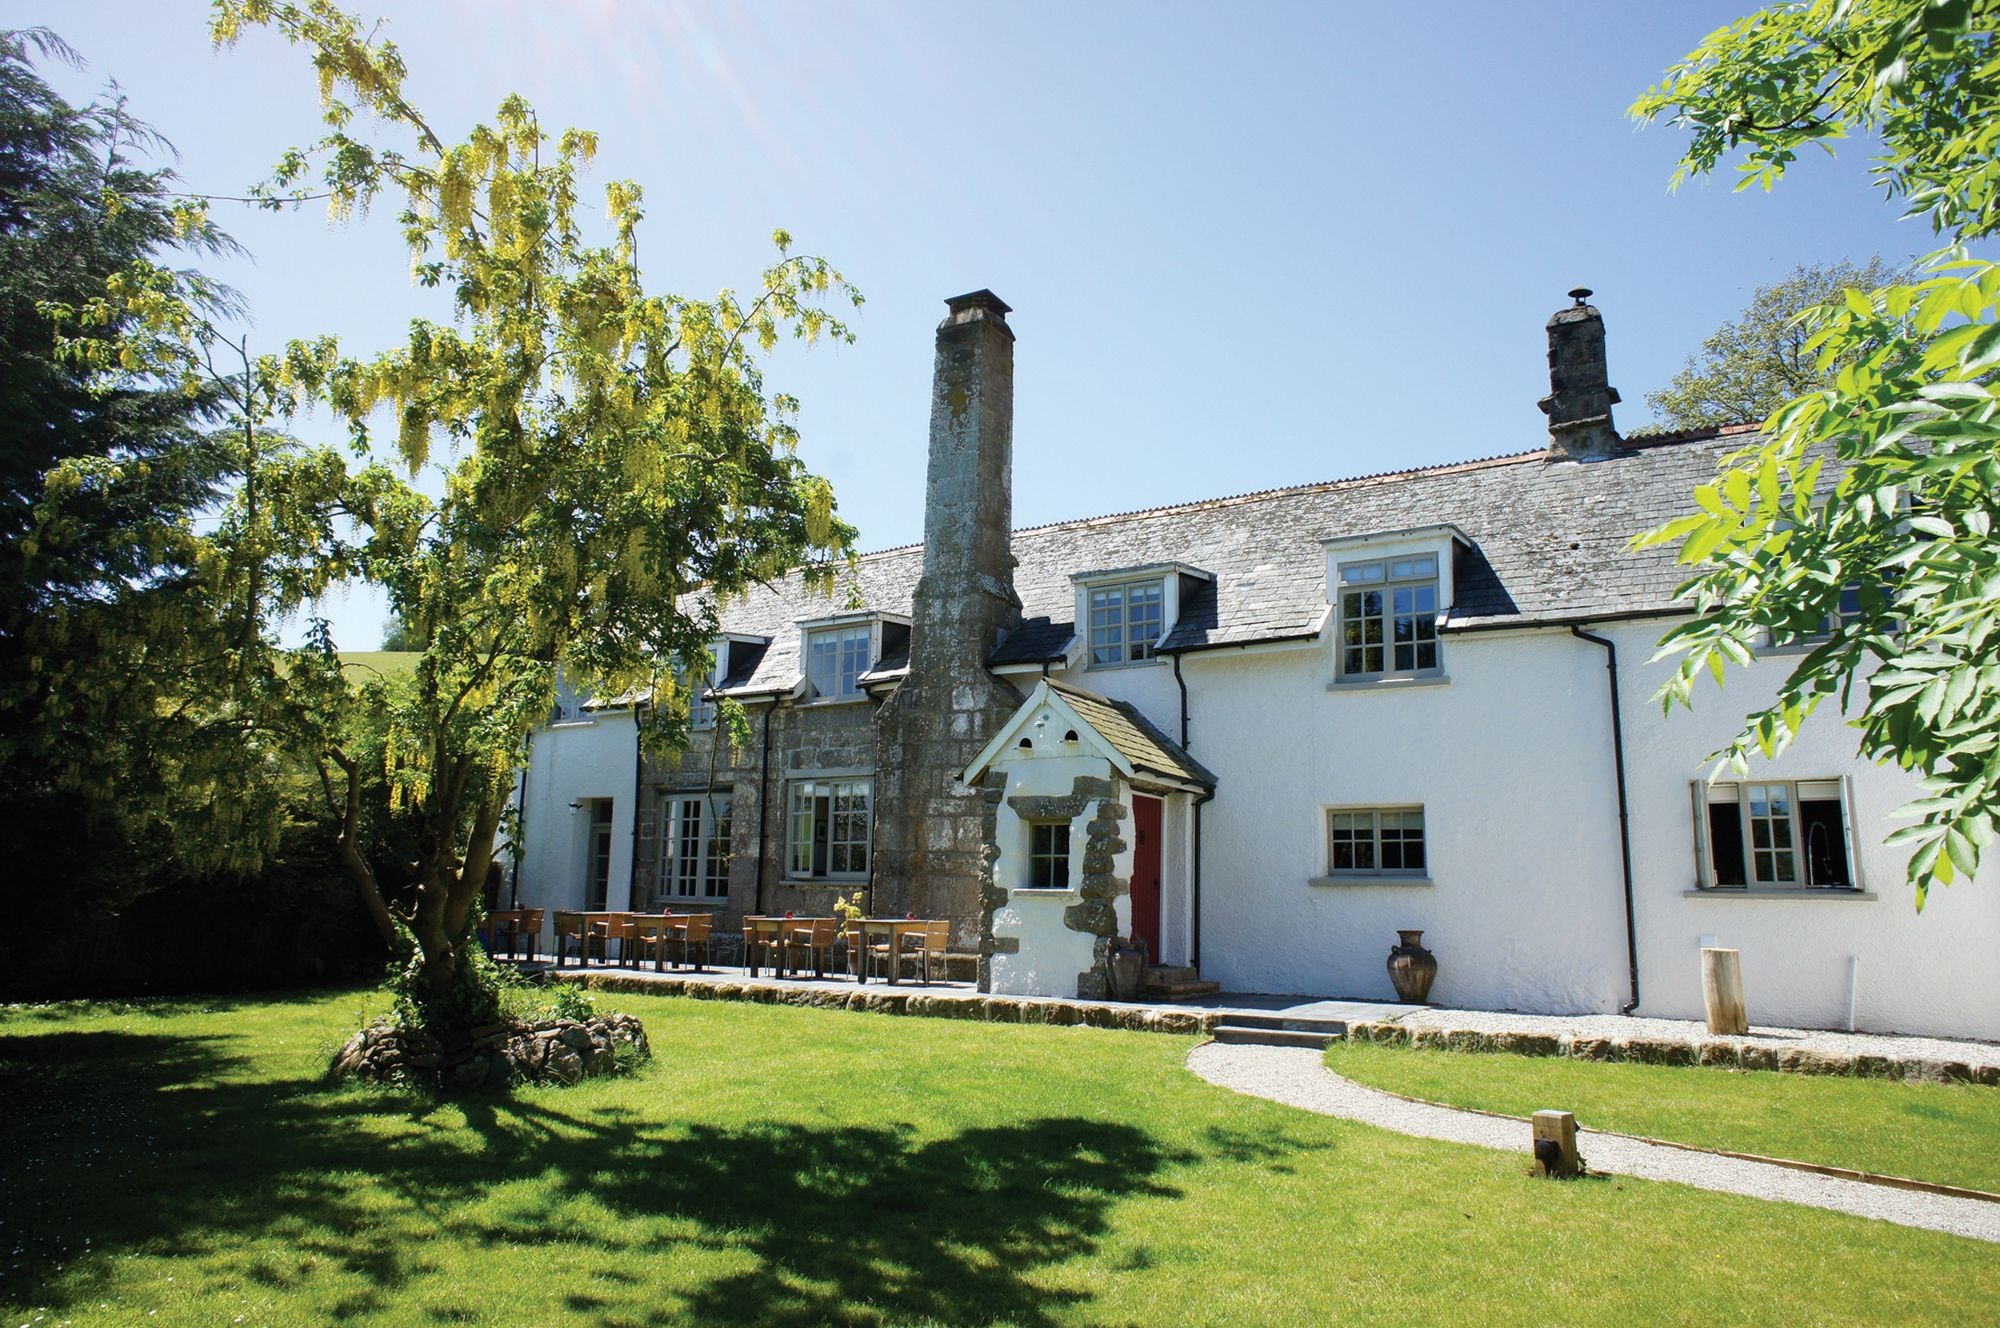 B&Bs in South West England holidays at Cool Places